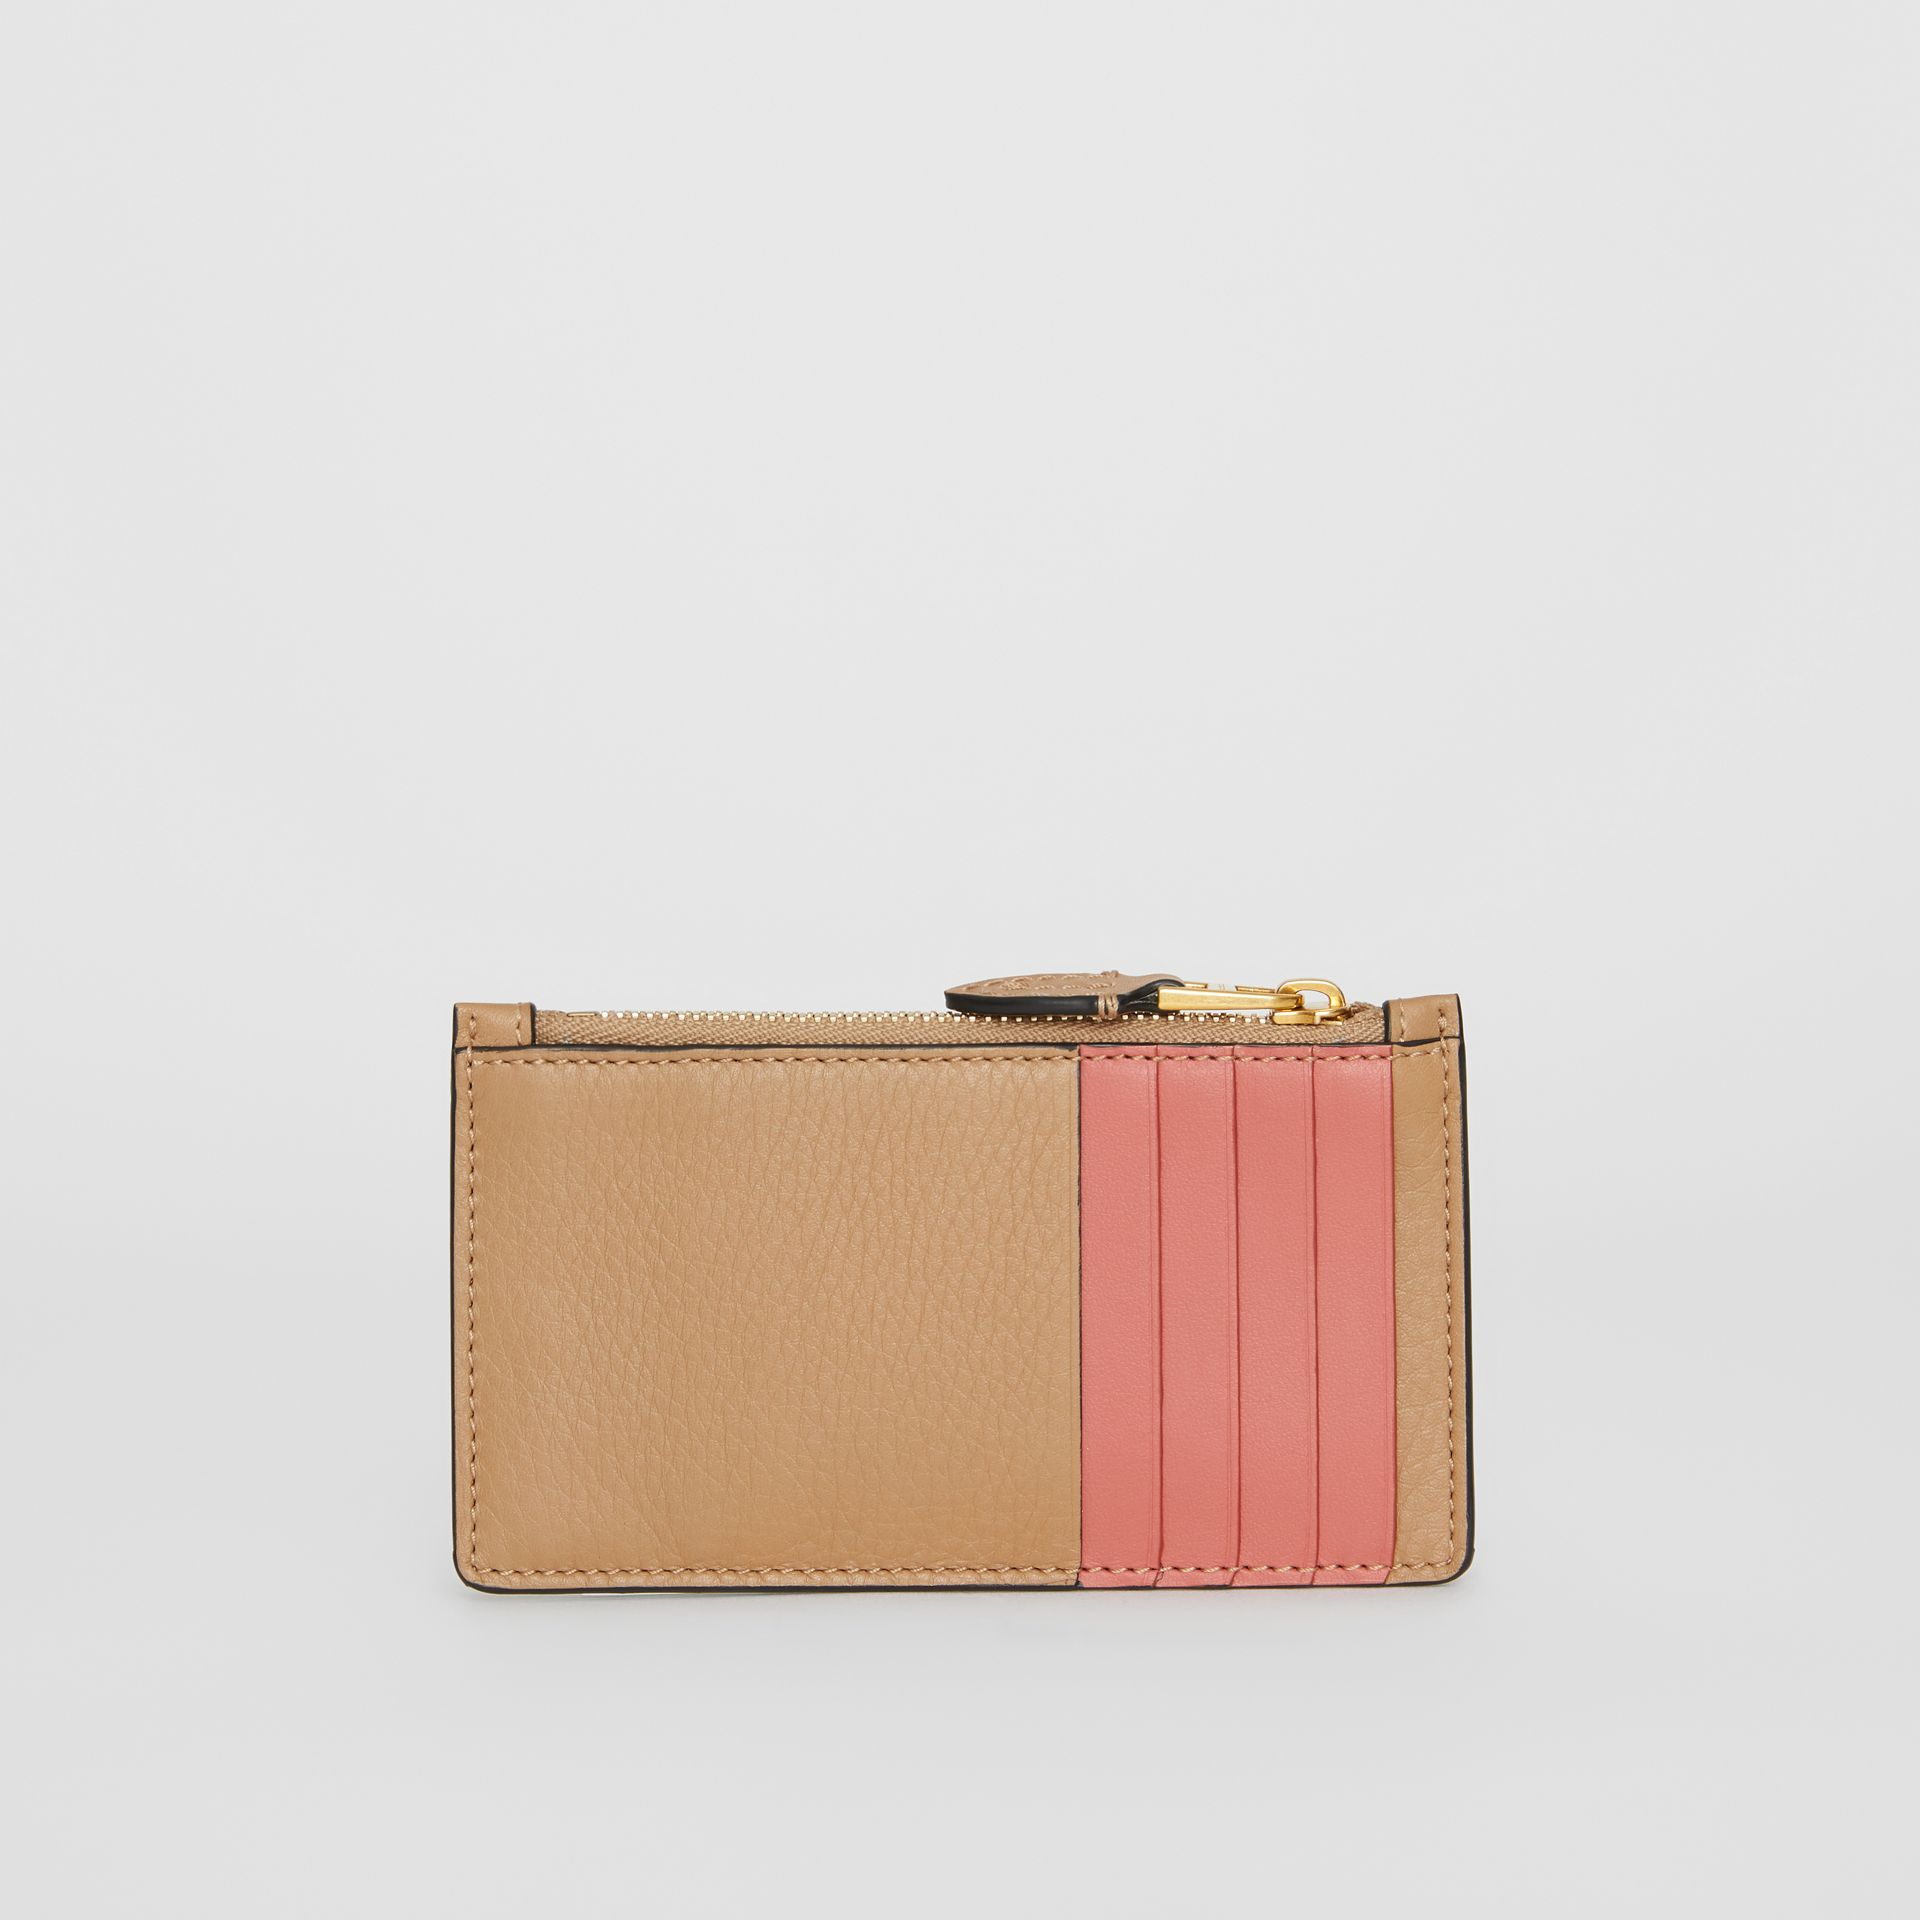 Two-tone Leather Card Case in Light Camel - Women | Burberry Canada - gallery image 5